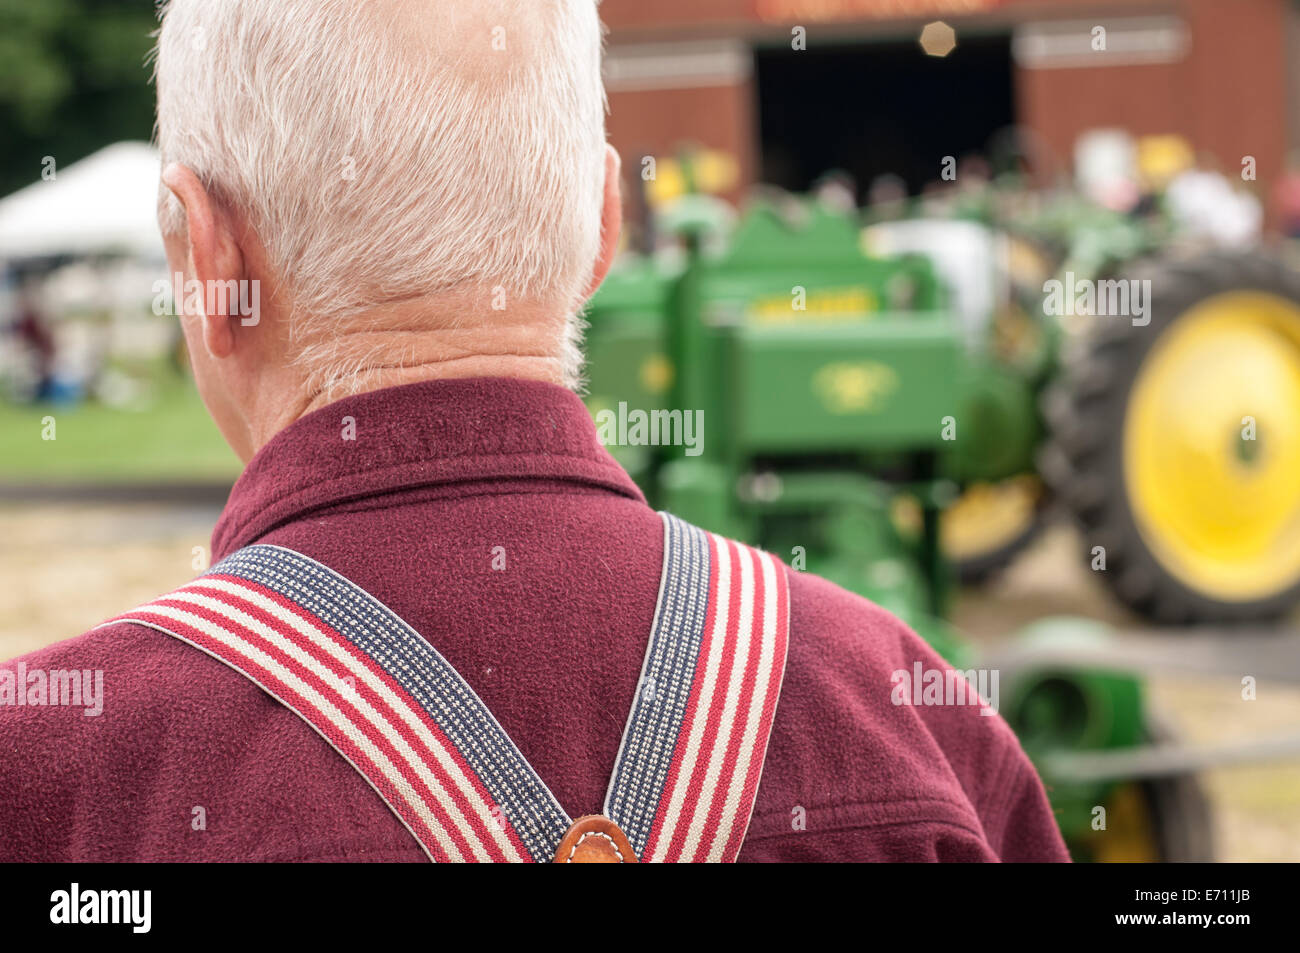 A farmer wearing American flag suspenders at a John Deere tractor expo in New Boston, New Hampshire, USA. - Stock Image